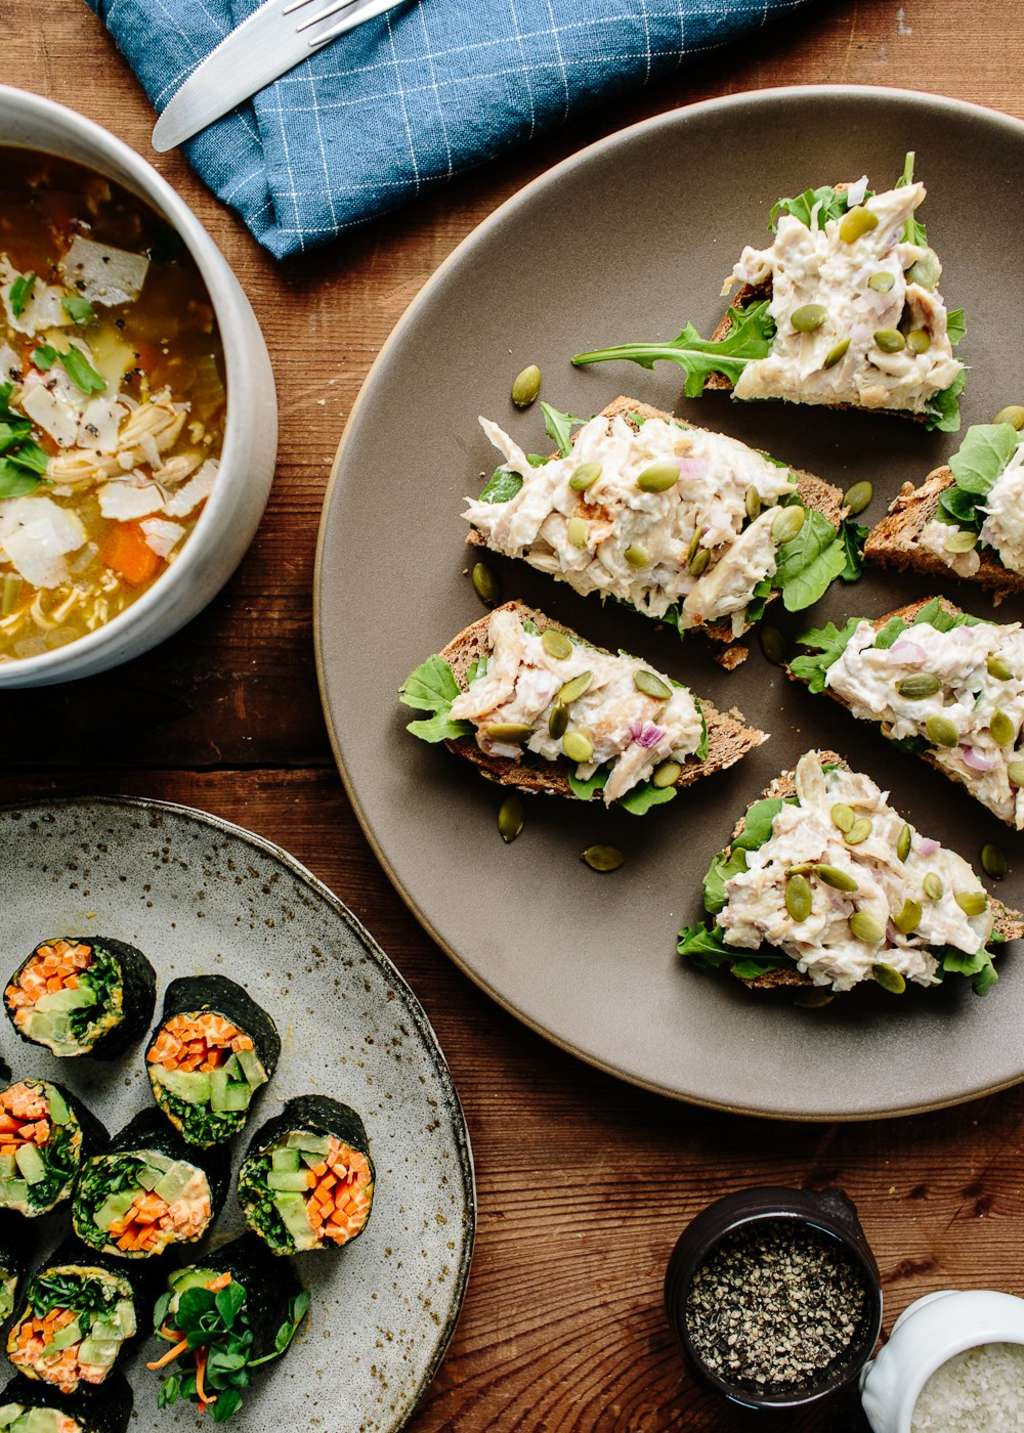 Healthy Make Ahead Lunches For Week  A Week of Healthy Make Ahead Lunches from Joy Manning